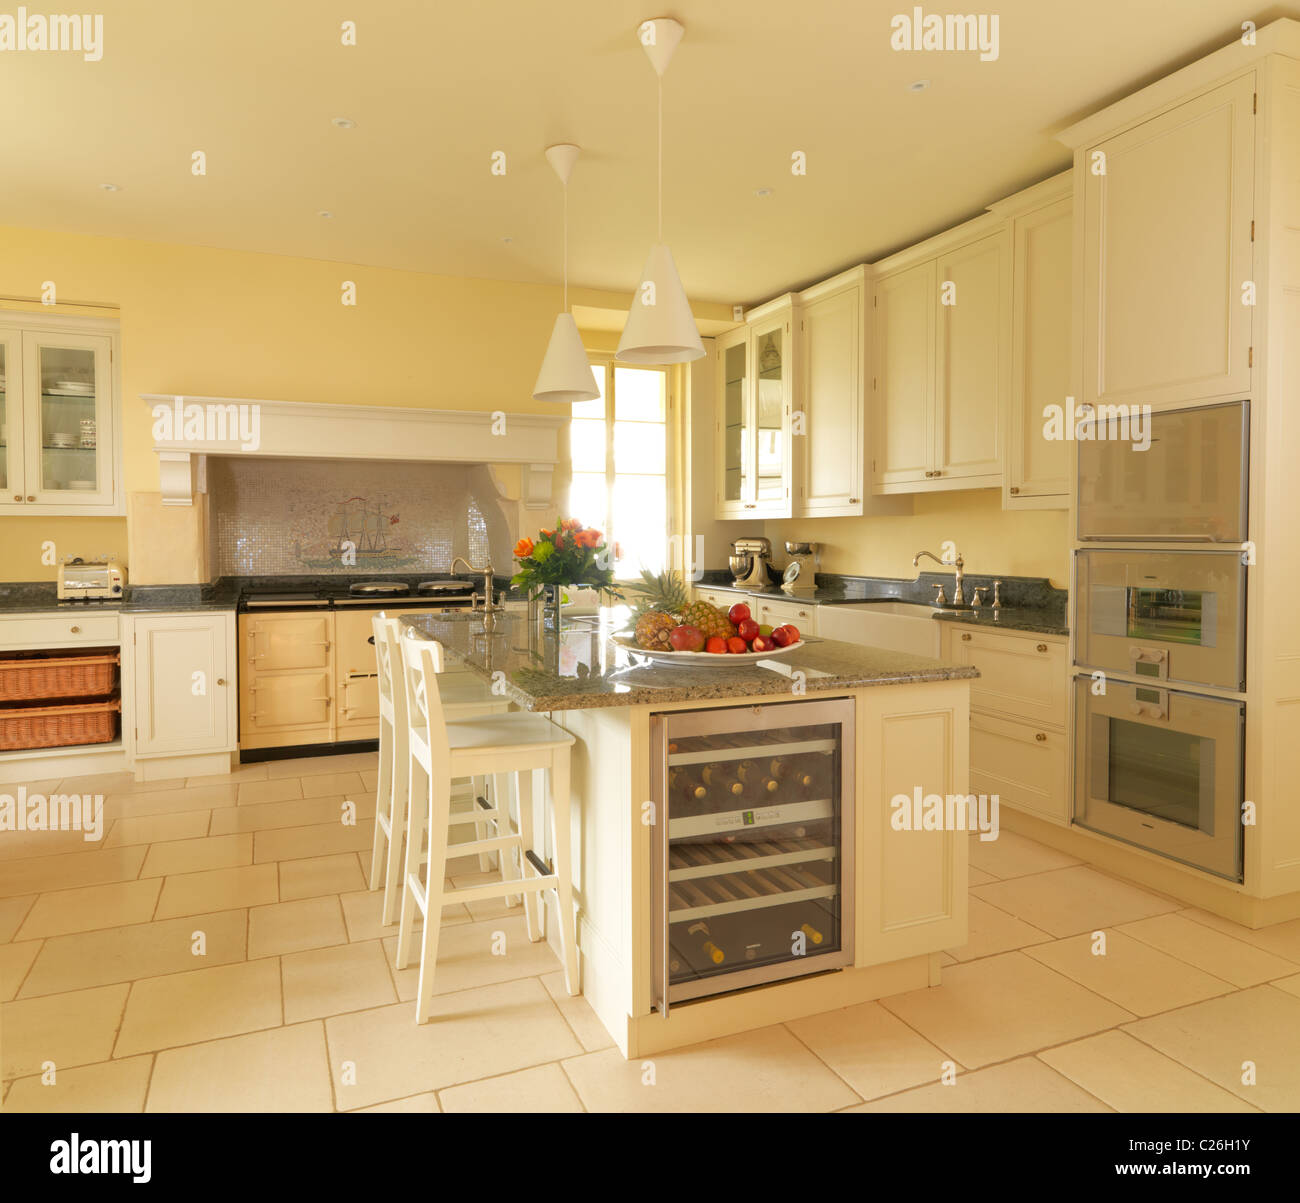 Cream Aga Stockfotos & Cream Aga Bilder - Alamy